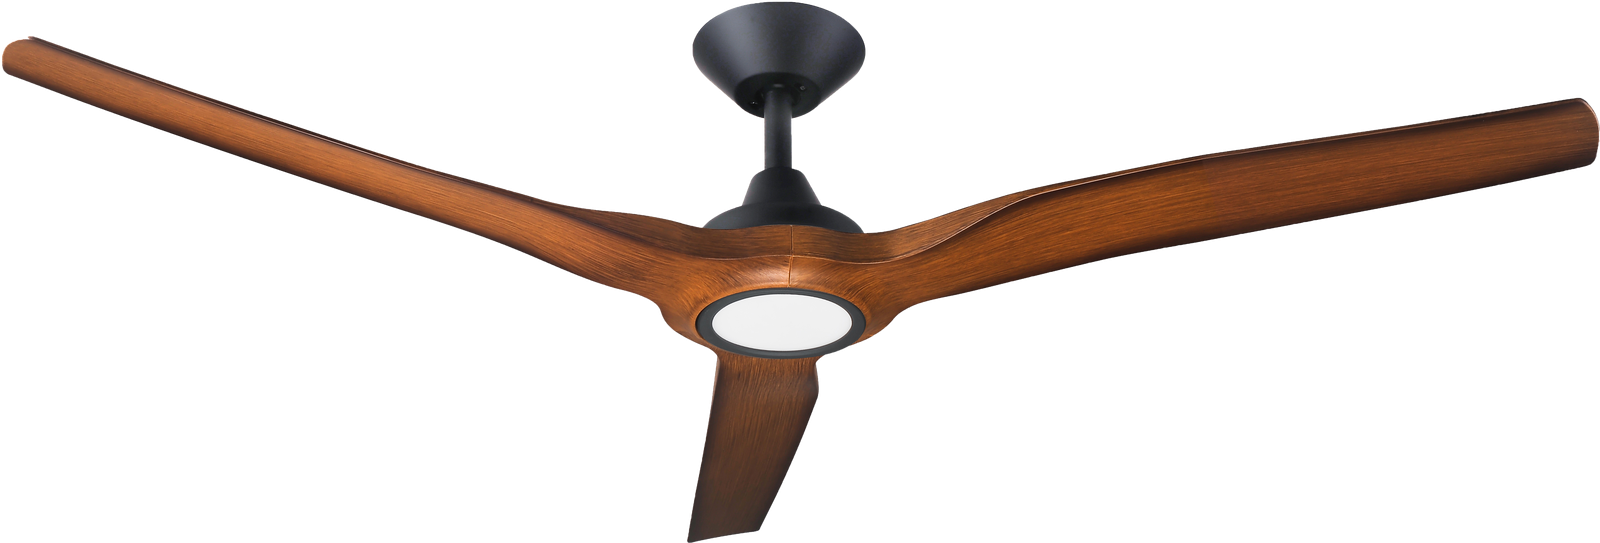 "Radical 2 Matt Black with Koa Blades 60"" with Light Ceiling Fan"